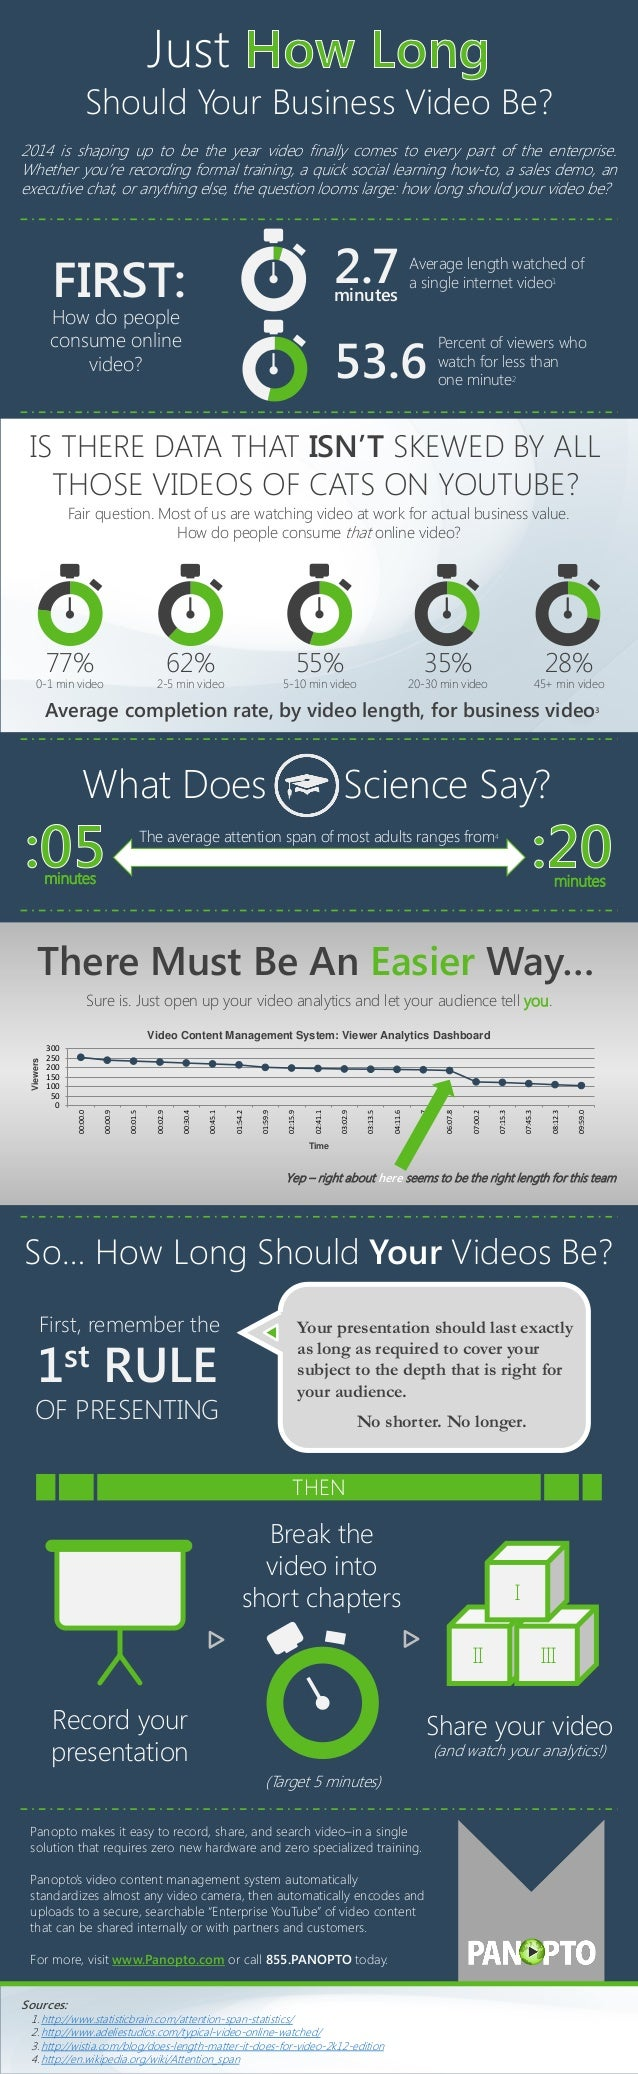 Infographic: How Long Should A Business Video Be - Panopto Enterprise Video